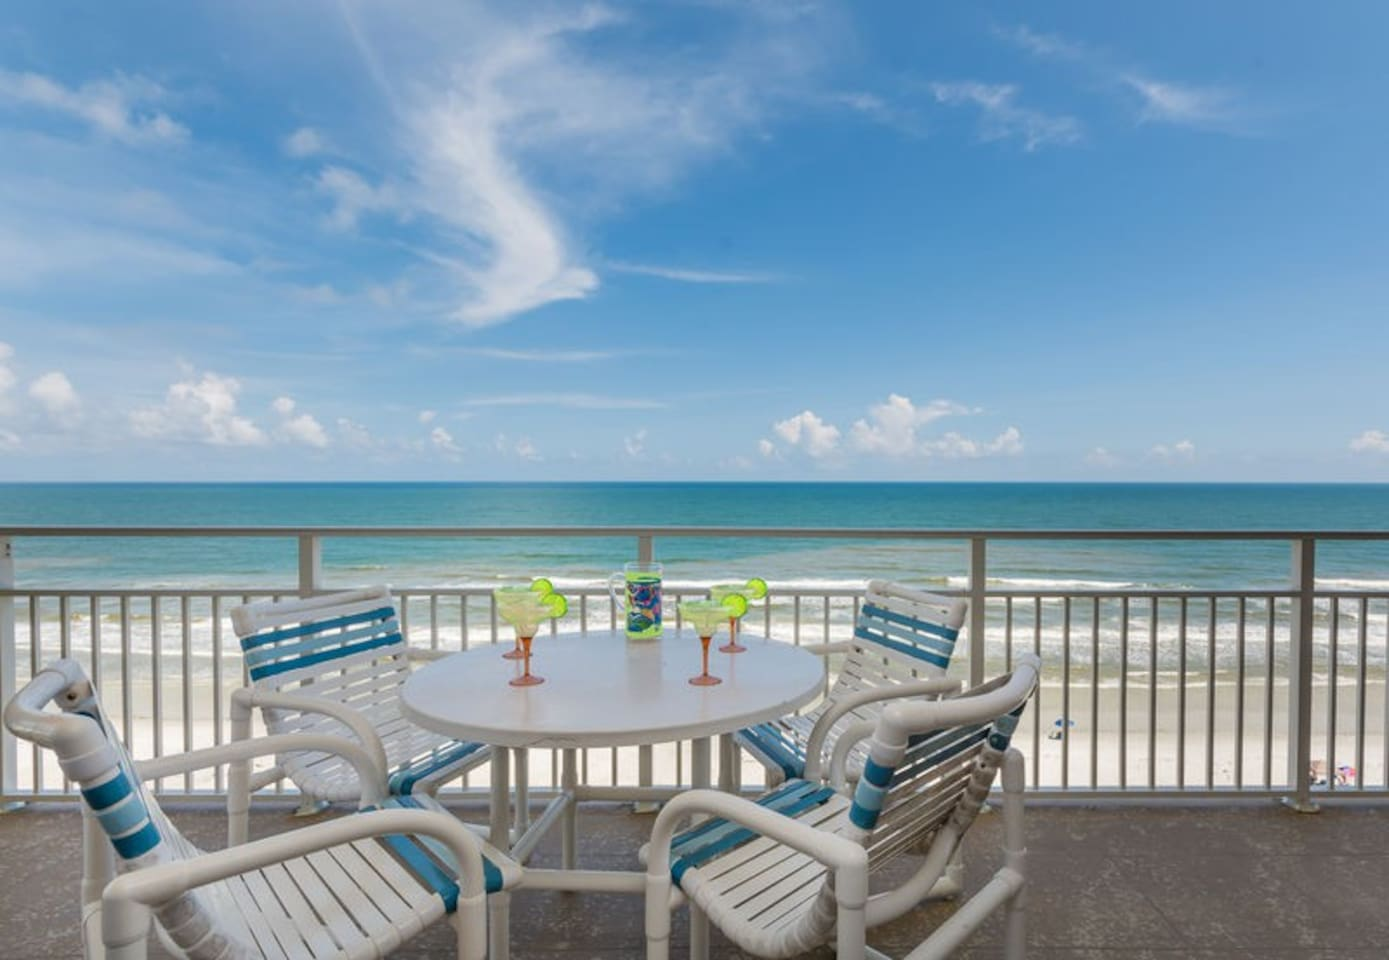 Ahhh paradise!  Sit back, relax and enjoy the oceanfront view from the wrap around balcony.